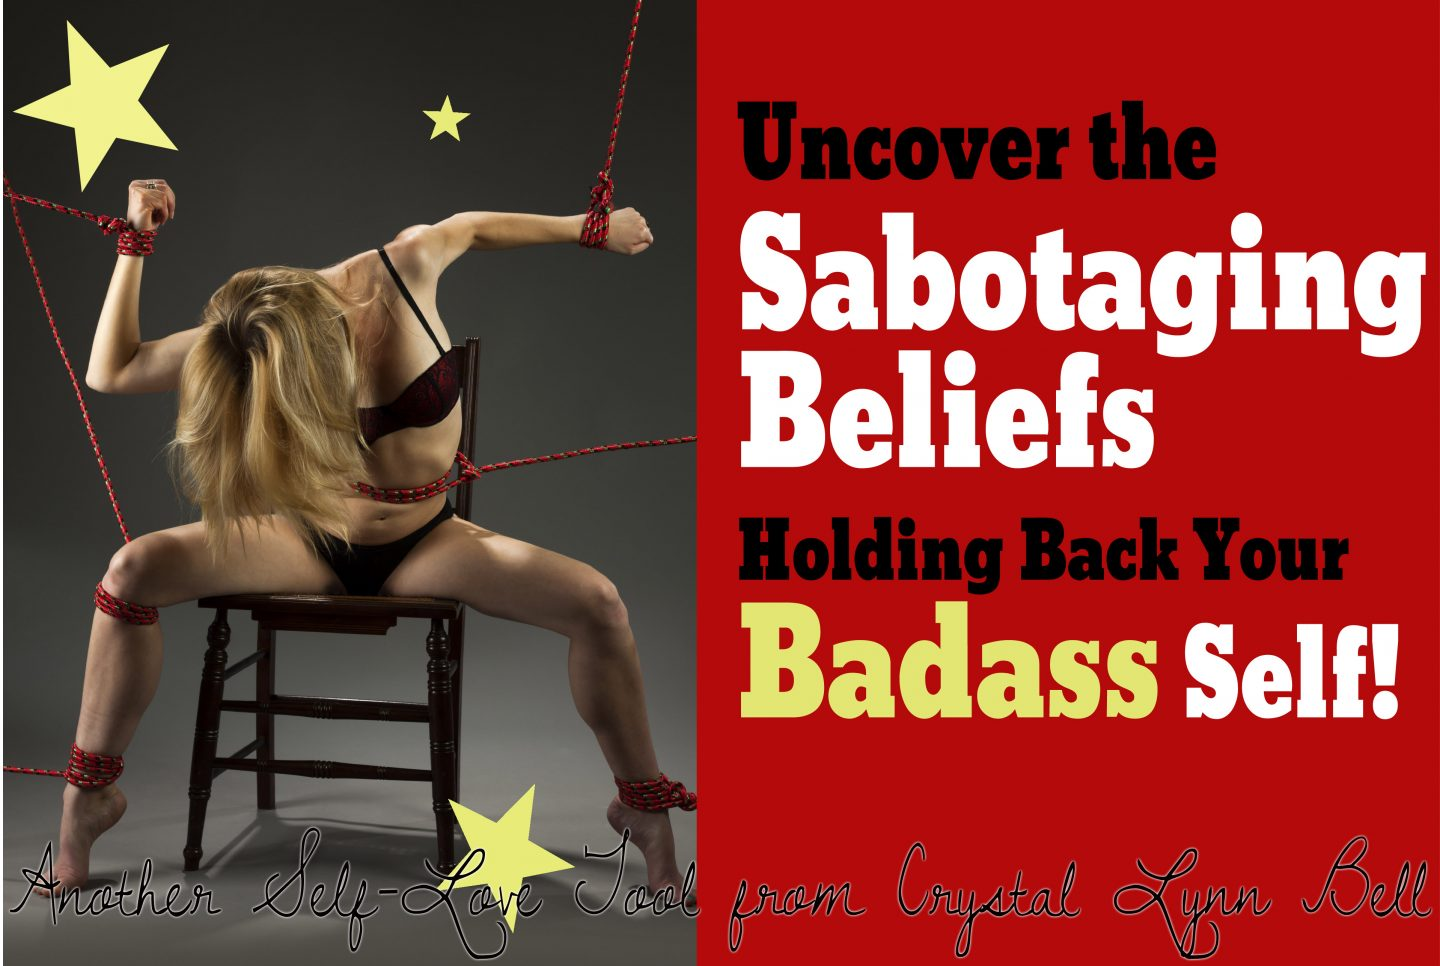 Uncover the Sabotaging Beliefs Holding Back Your Badass Self